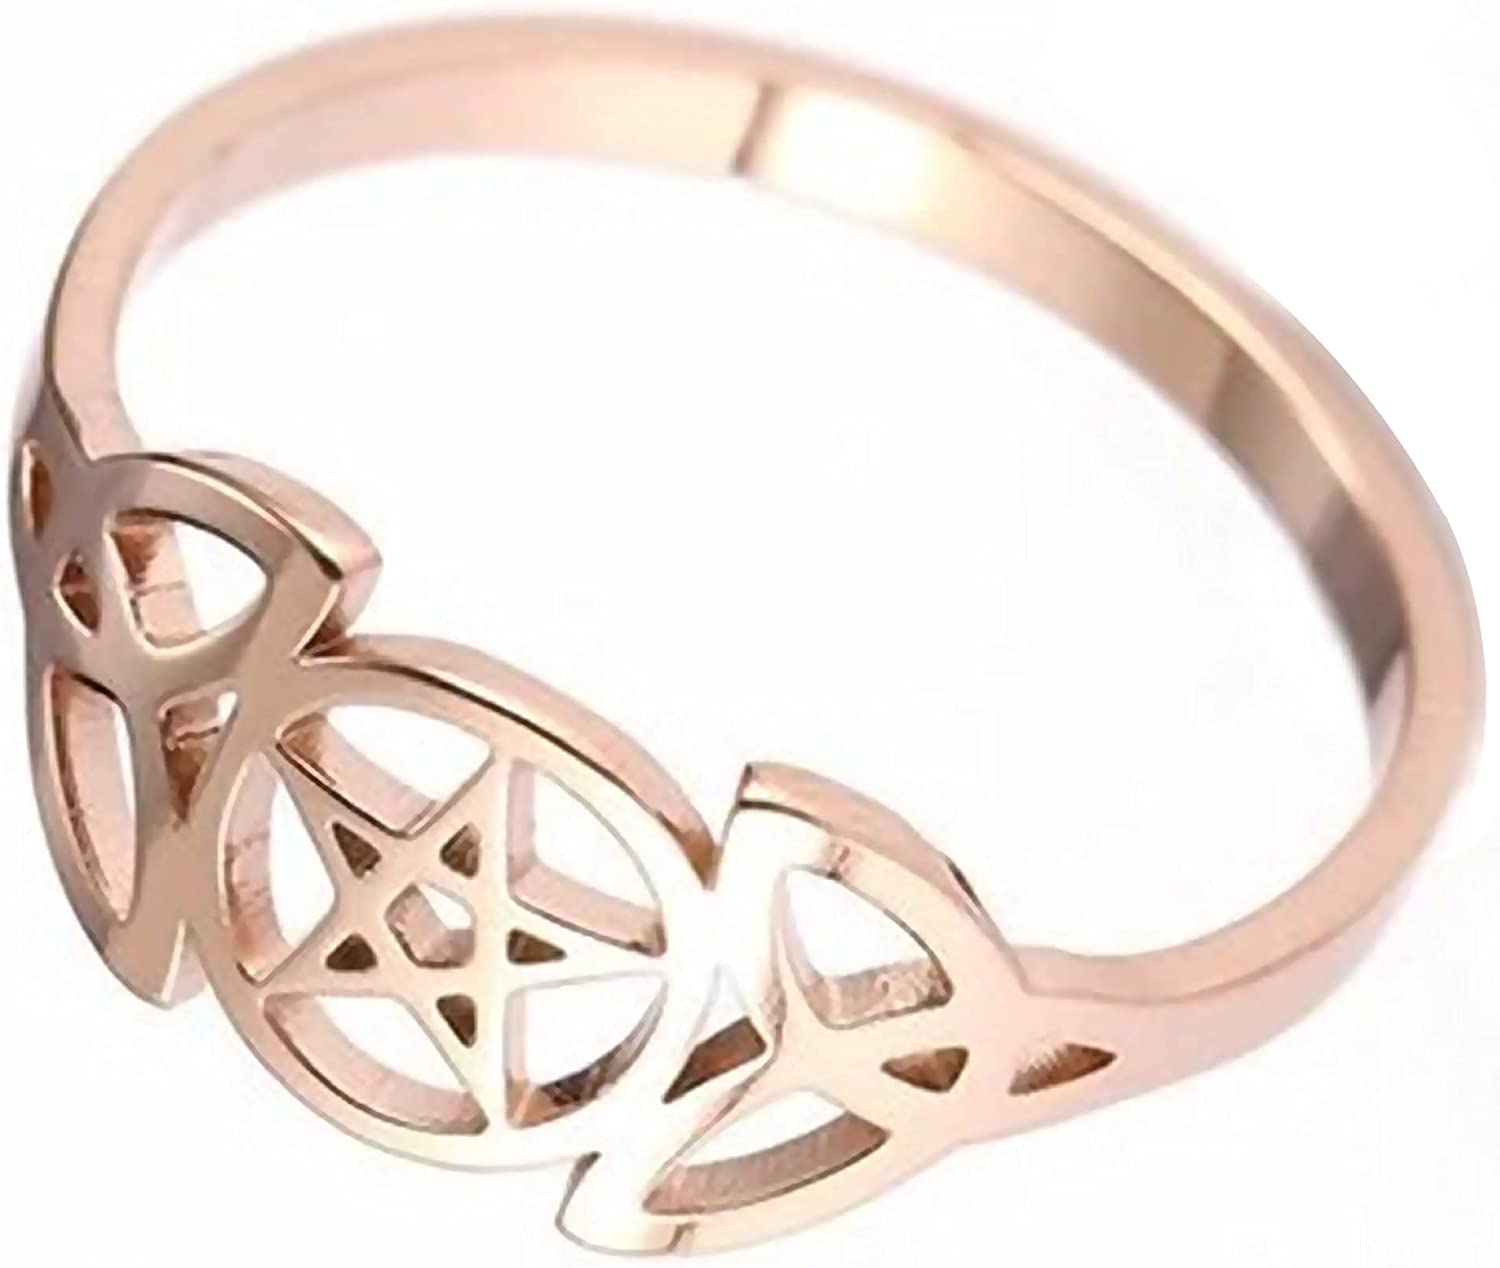 Fantasy Forge Jewelry Triple Goddess Ring Womens Rose Gold Stainless Steel Star Crescent Moon Band Sizes 6-10